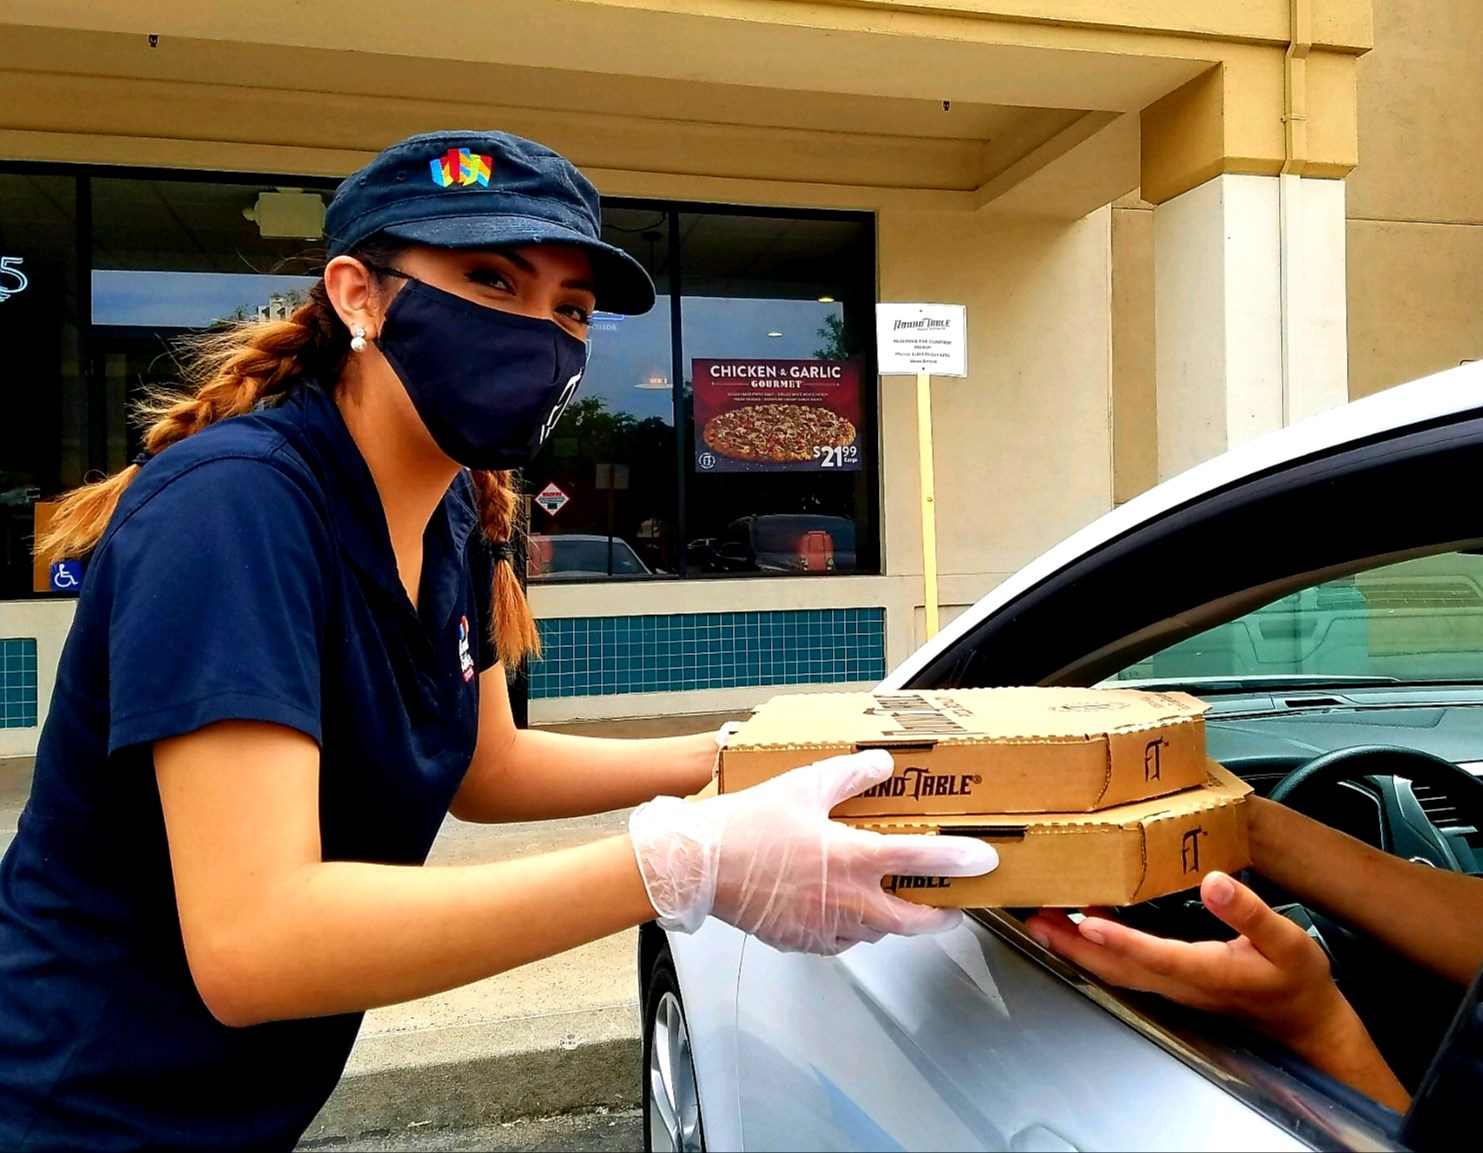 A young lady hand pizza to customers